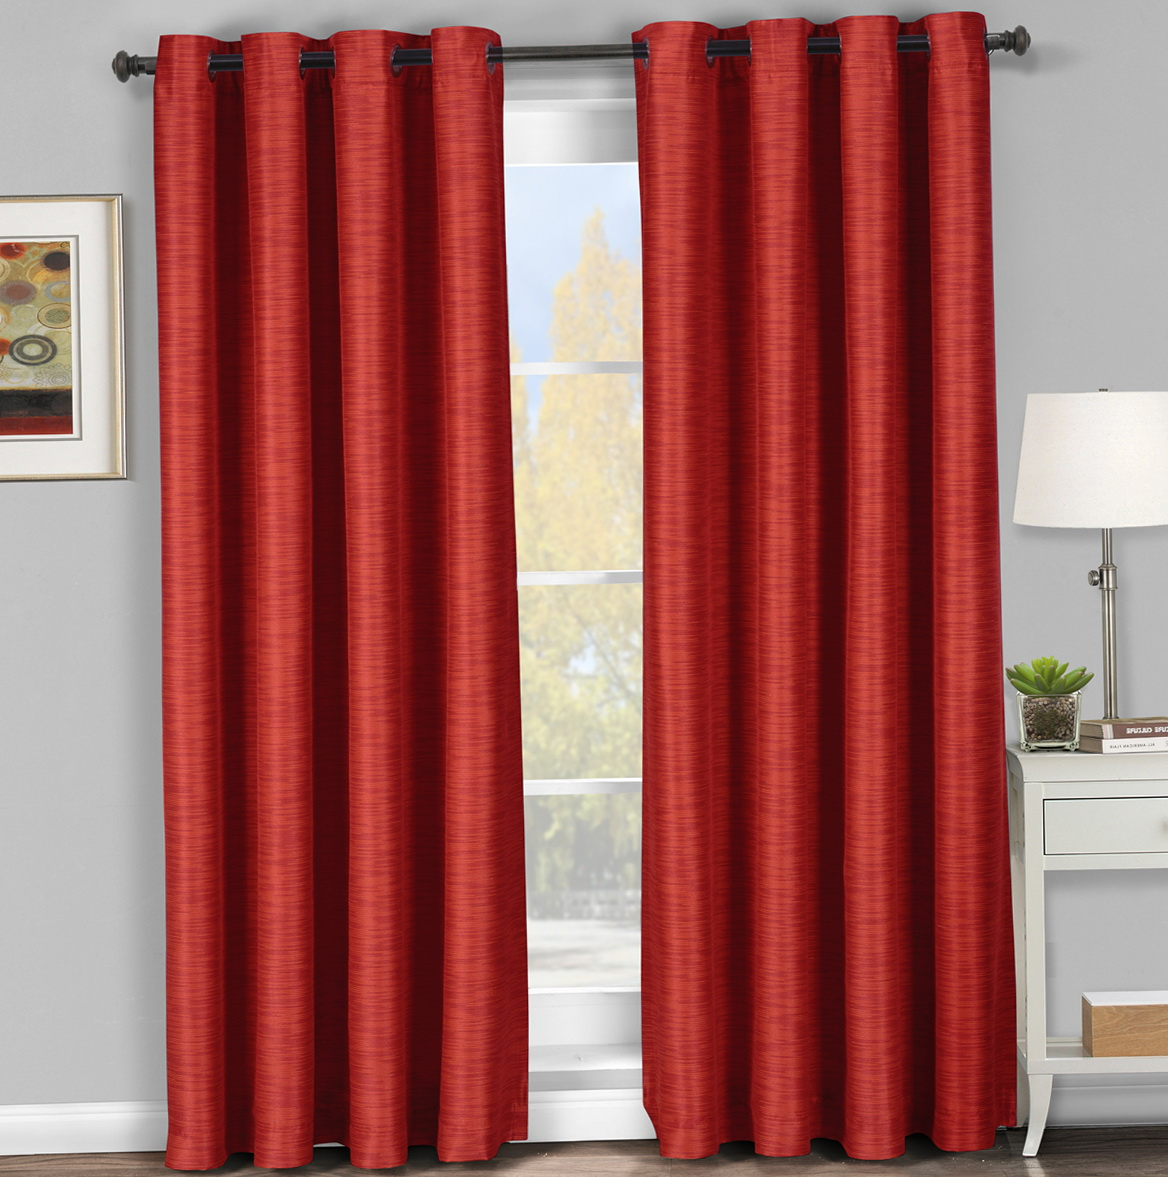 Long blackout curtains